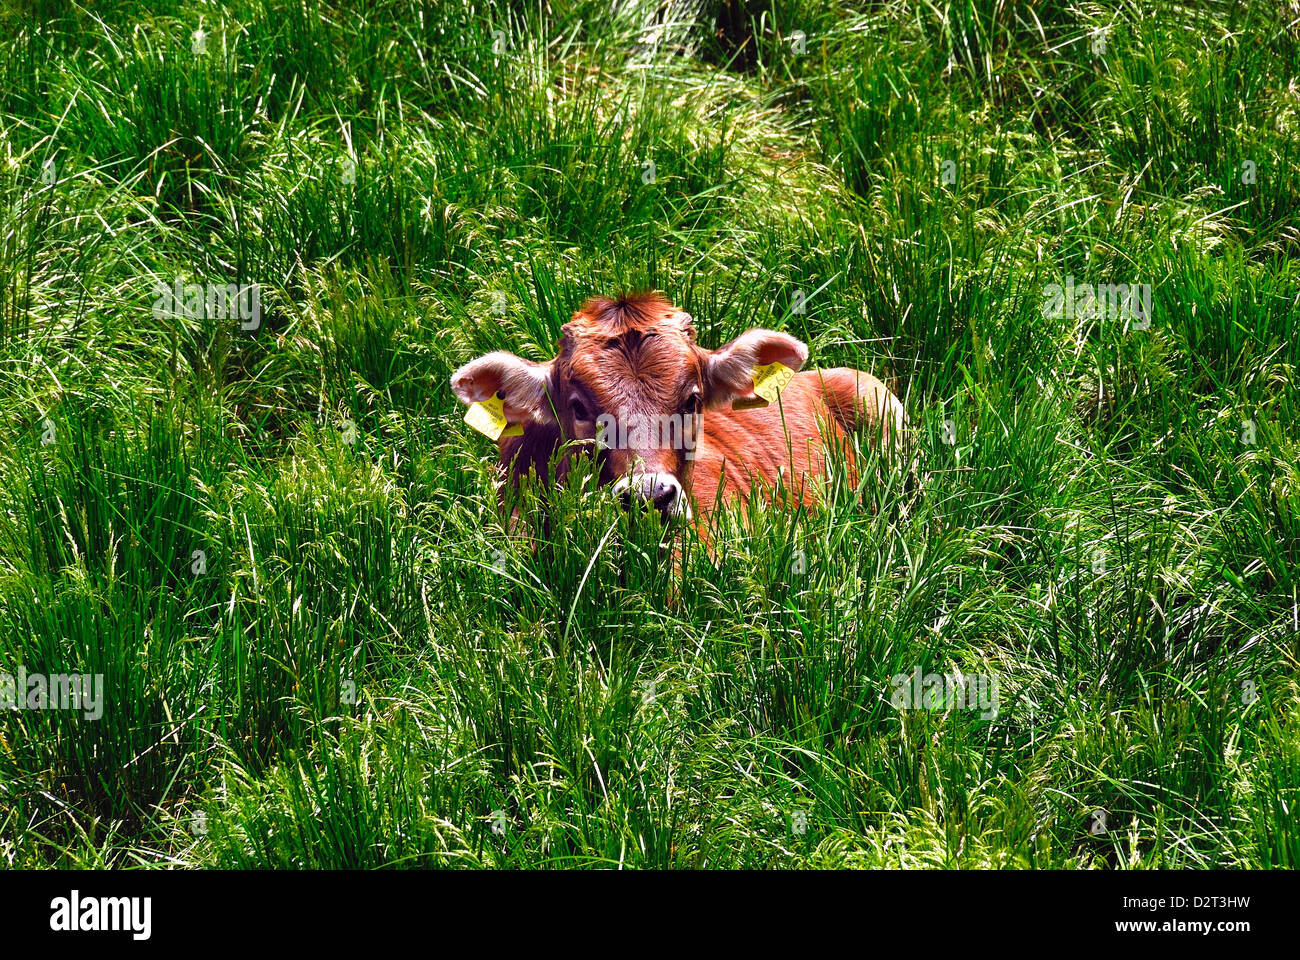 Val Lepena, Slovenia : a calf is crouching in the tall grass of the mountain pasture. - Stock Image